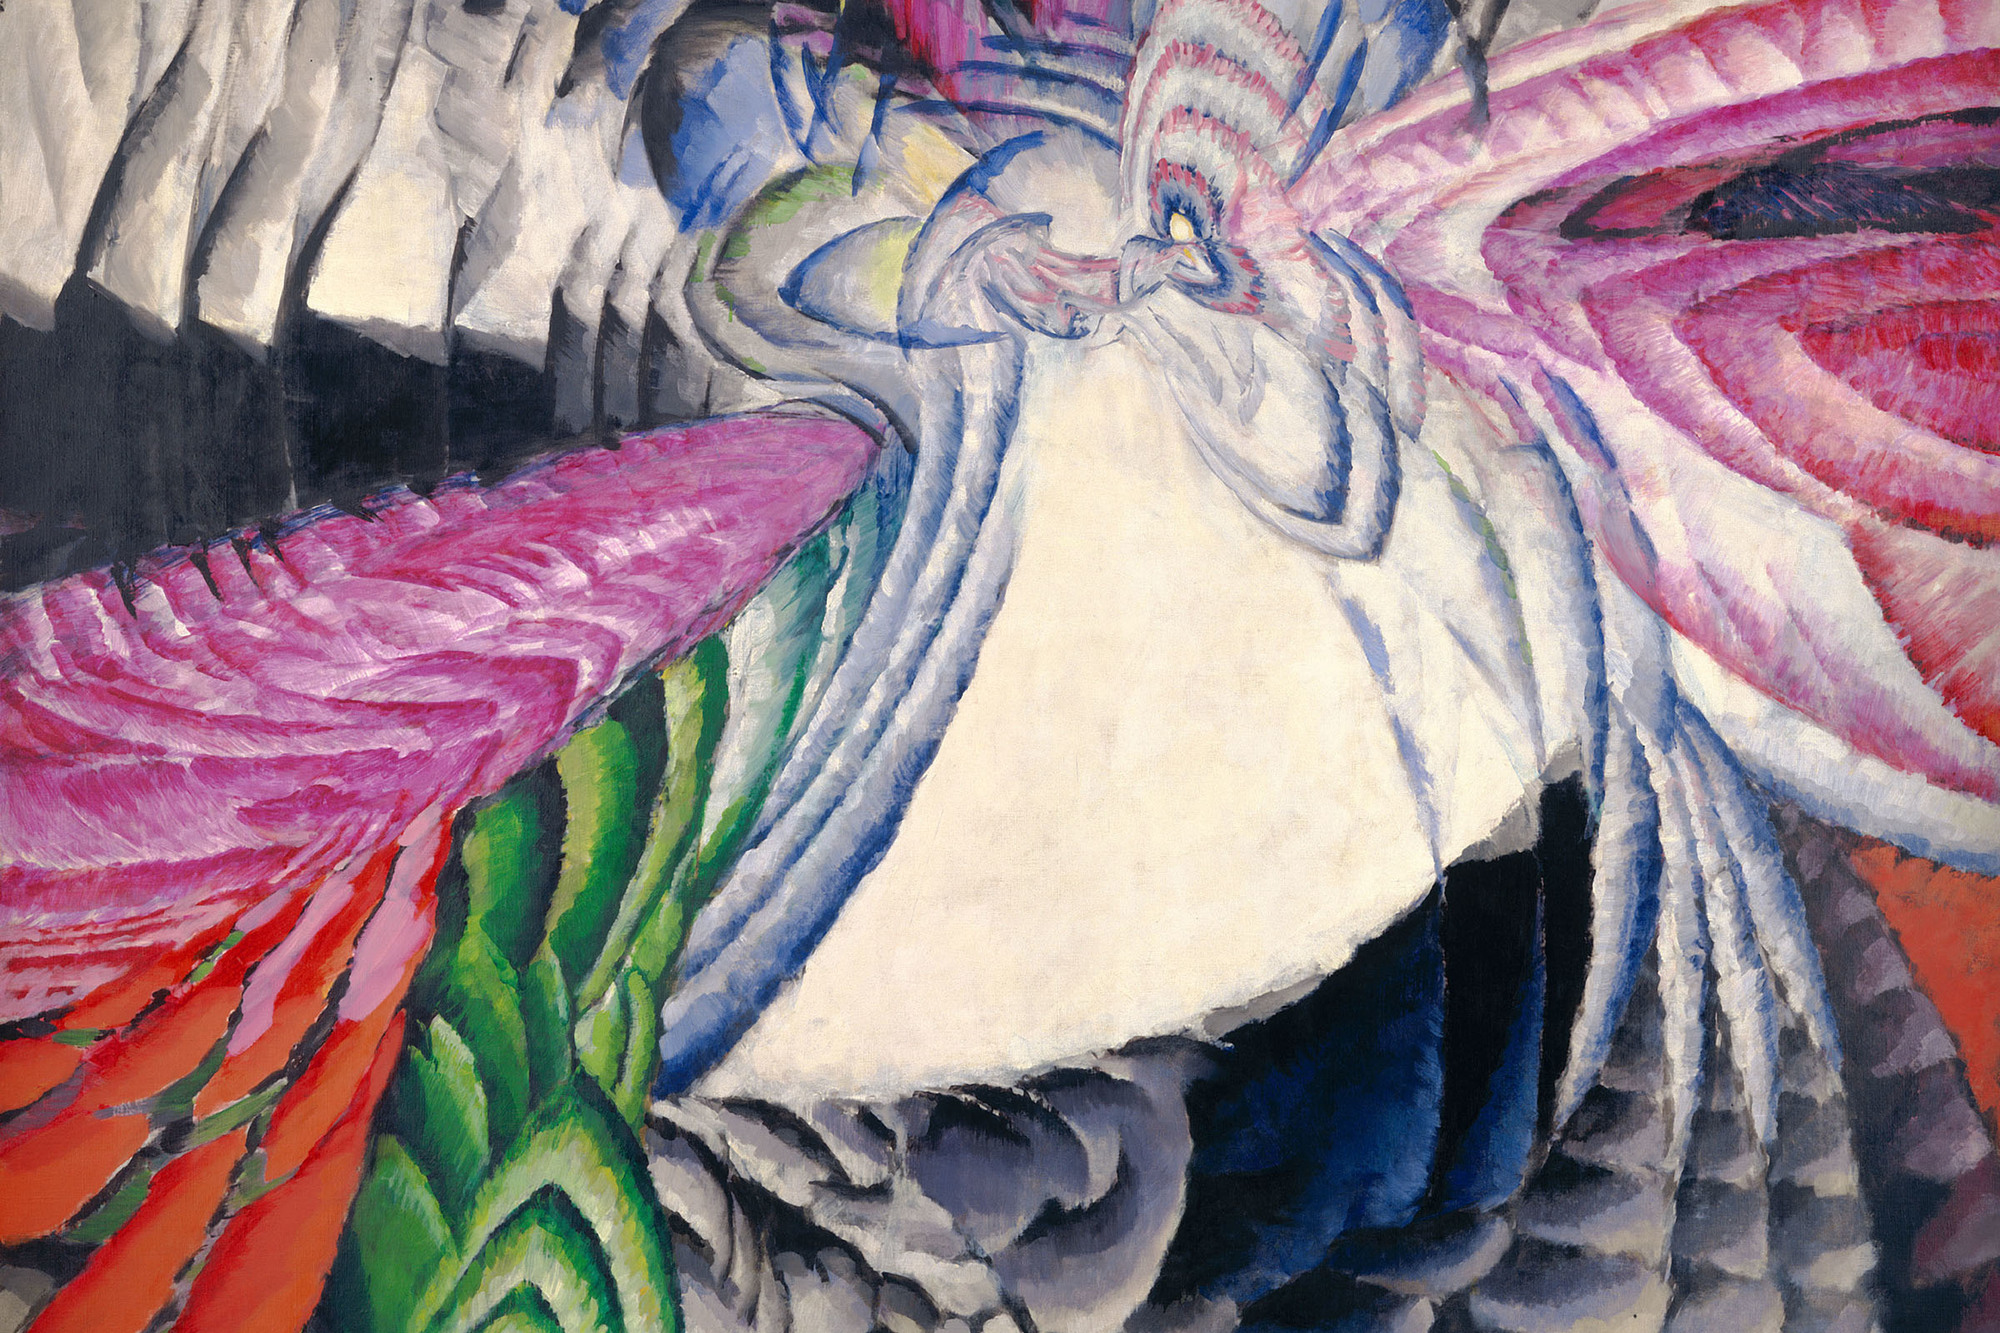 František Kupka. Localization of Graphic Motifs II. 1912–13. Oil on canvas, 78 3/4 × 76 3/8″ (200 × 194 cm), frame: 78 3/4 × 76 3/8″ (200 × 194 cm). National Gallery of Art, Washington, D.C., Ailsa Mellon Bruce Fund and Gift of Jan and Meda Mladek. Image courtesy of the National Gallery of Art, Washington. © 2012 Artists Rights Society (ARS), New York/ADAGP, Paris